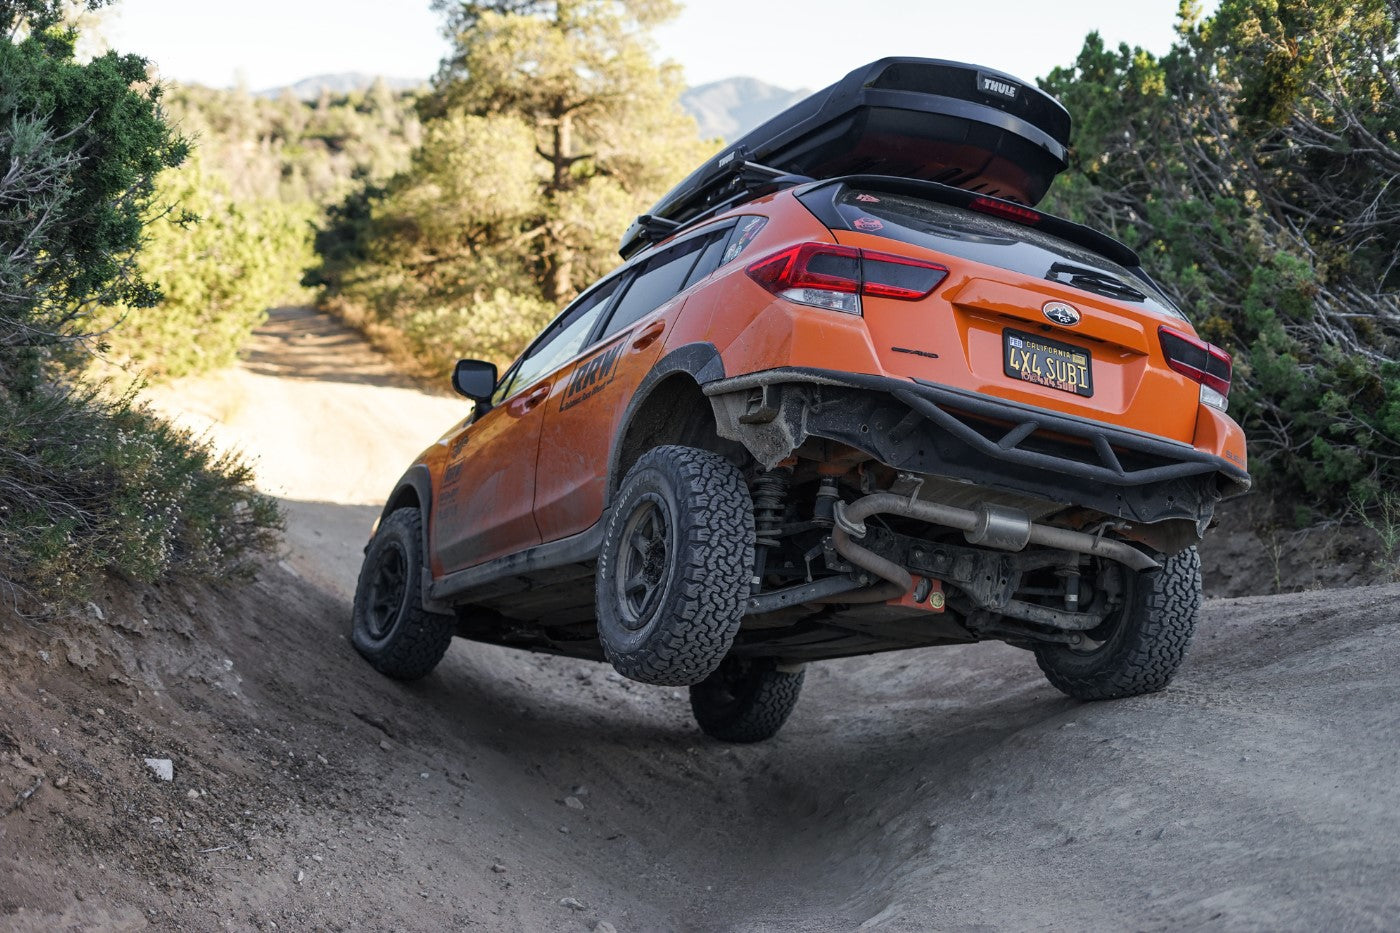 Your Overland Crosstrek's Next Step: Armored Bumpers